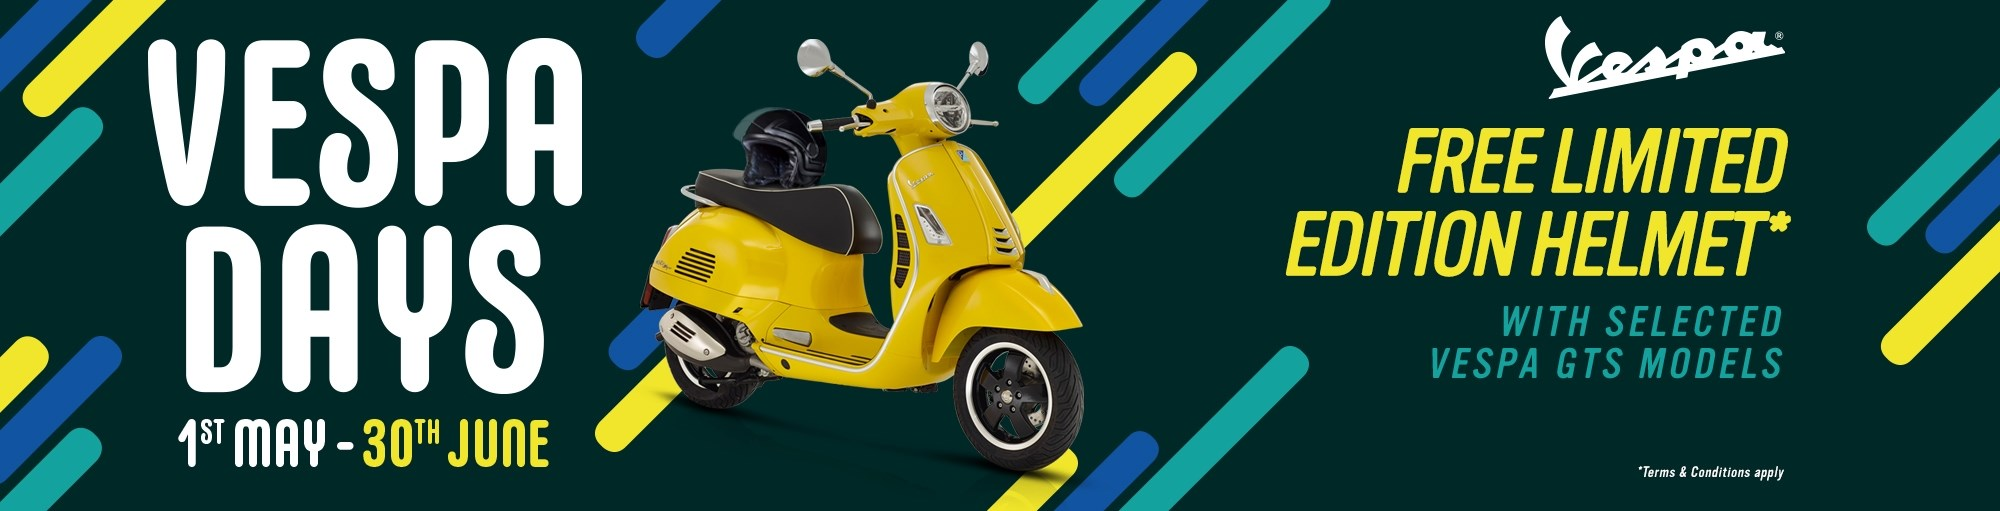 Get a free limited-edition helmet when you buy a Vespa GTS until June 30th